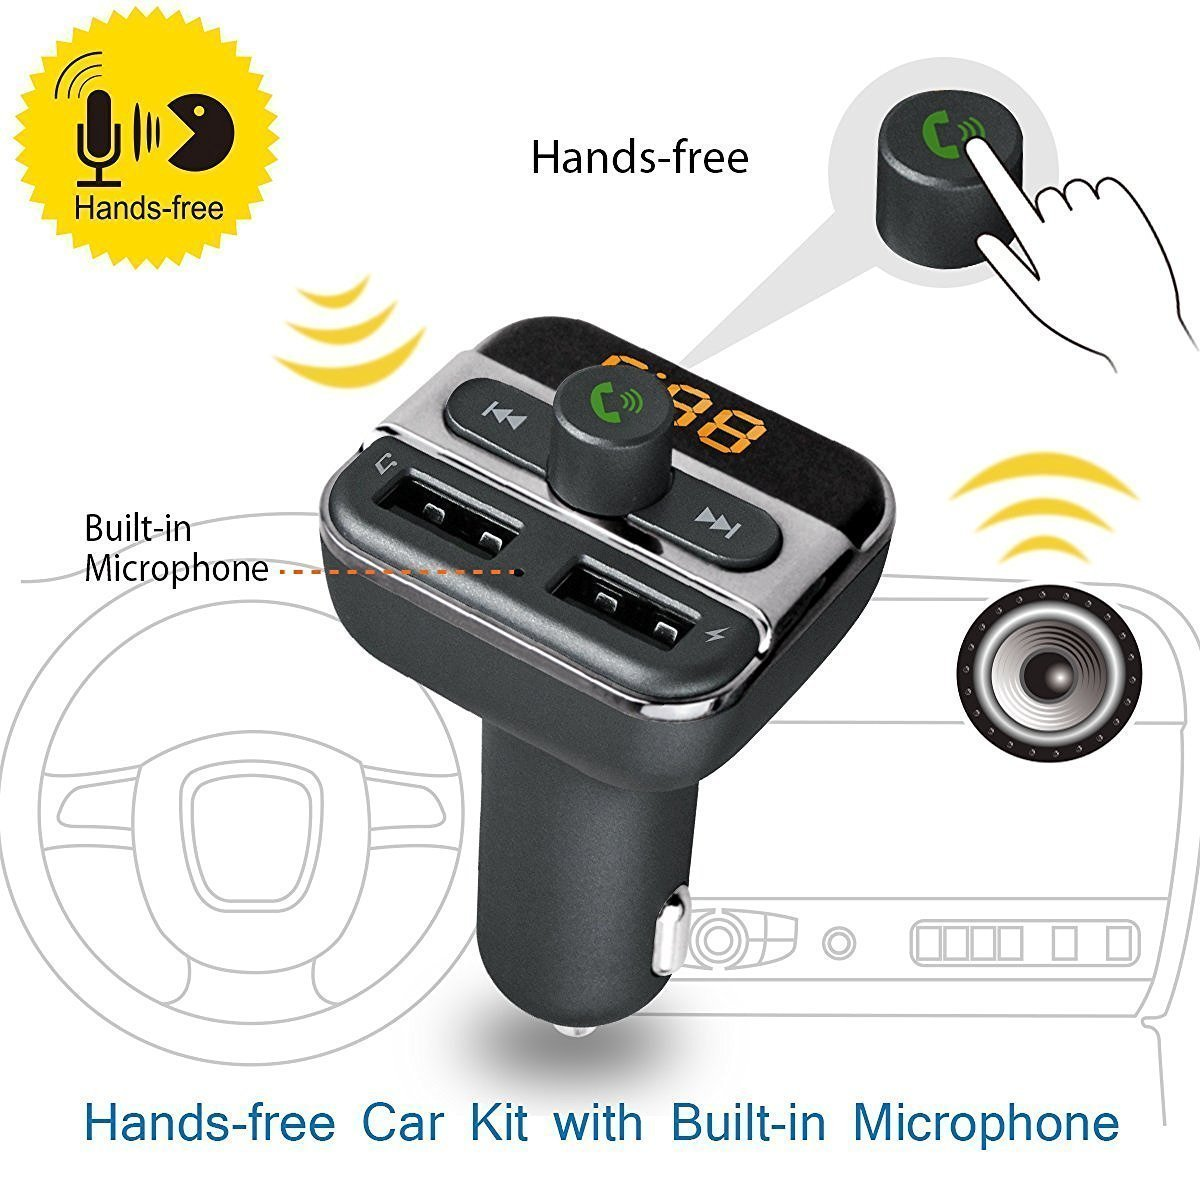 Bluetooth Car Kit Fm Transmitter Kinnara Wireless Bt20 Dual Usb Charger Mp3 Wma Audio Hands Free Call 5v 34a Support Tf Card Music Pl Modulator Radio Adapter With Led Display 21a Output Player Flash